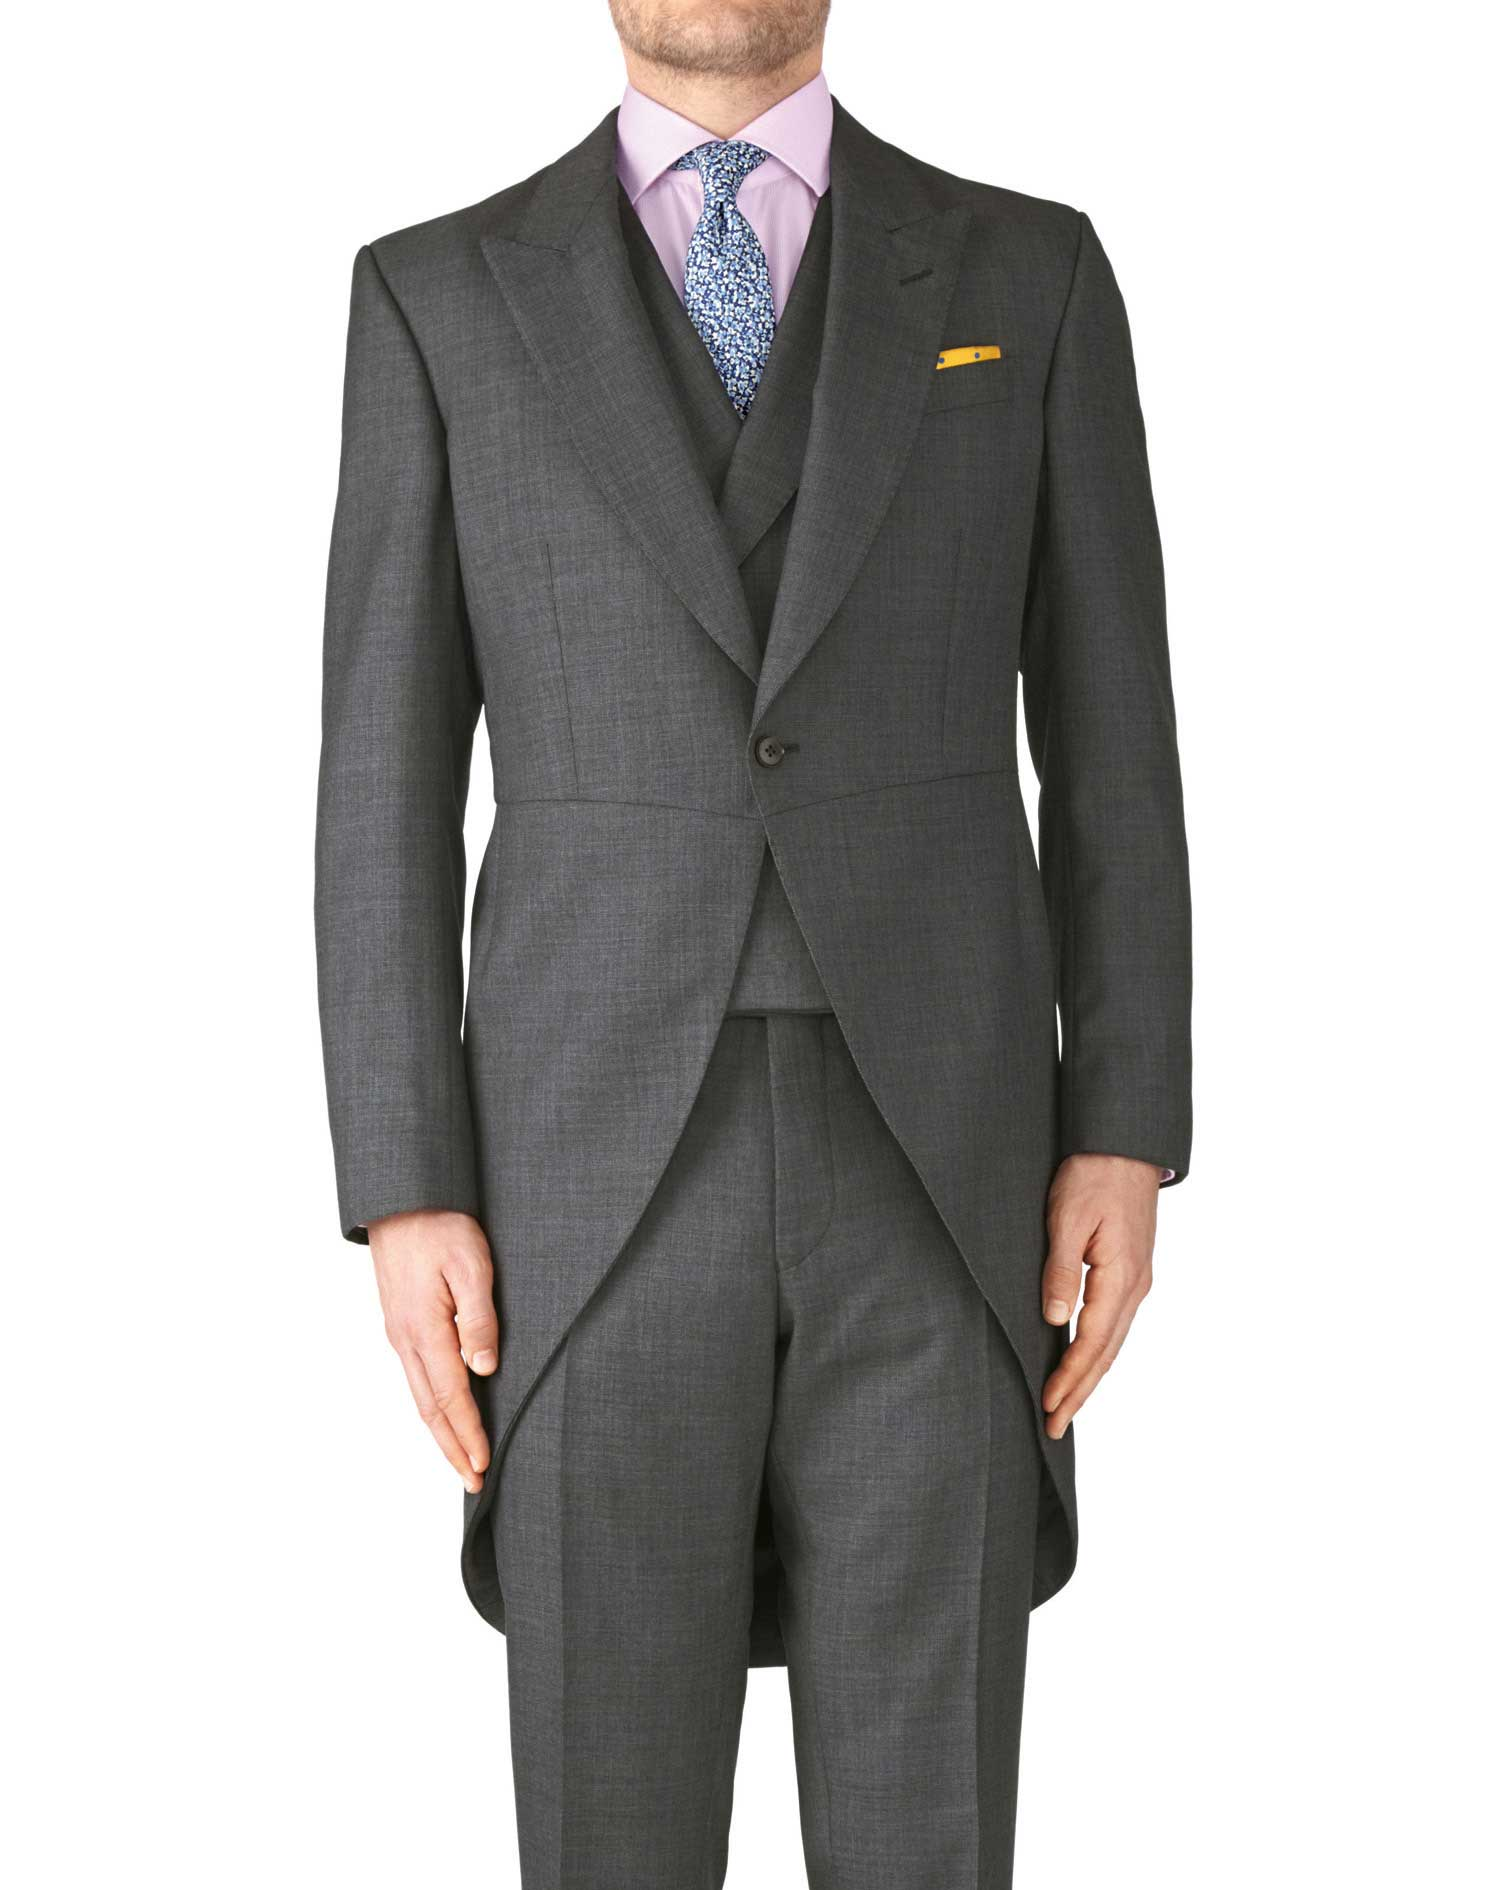 Dark Grey Classic Fit Morning Suit Tail Coat Size 38 Regular by Charles Tyrwhitt